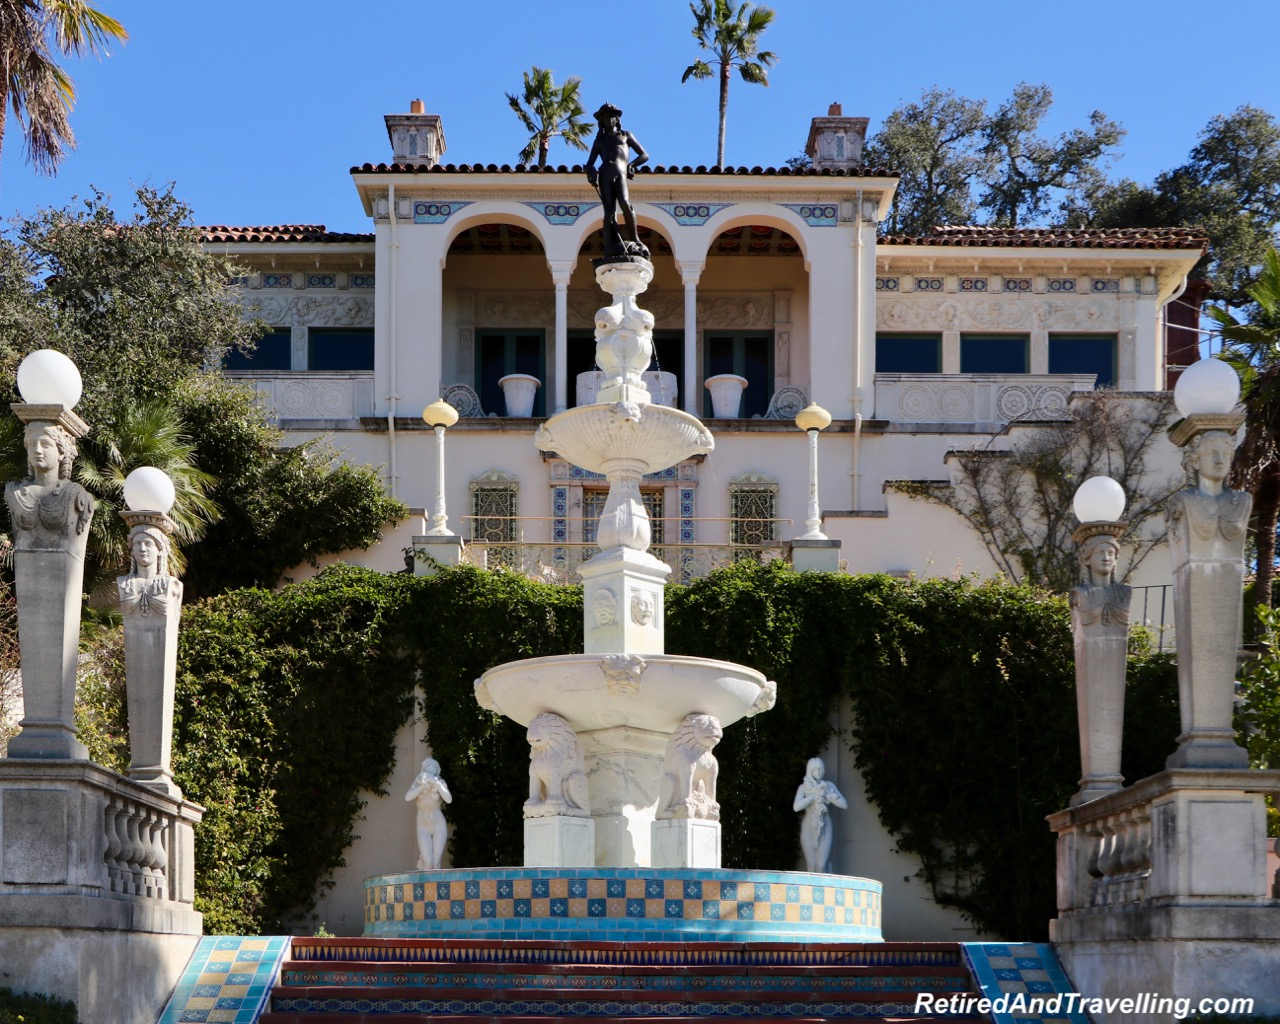 Hearst Grounds Buildings - Visit The Hearst Castle For Eclectic Sights.jpg